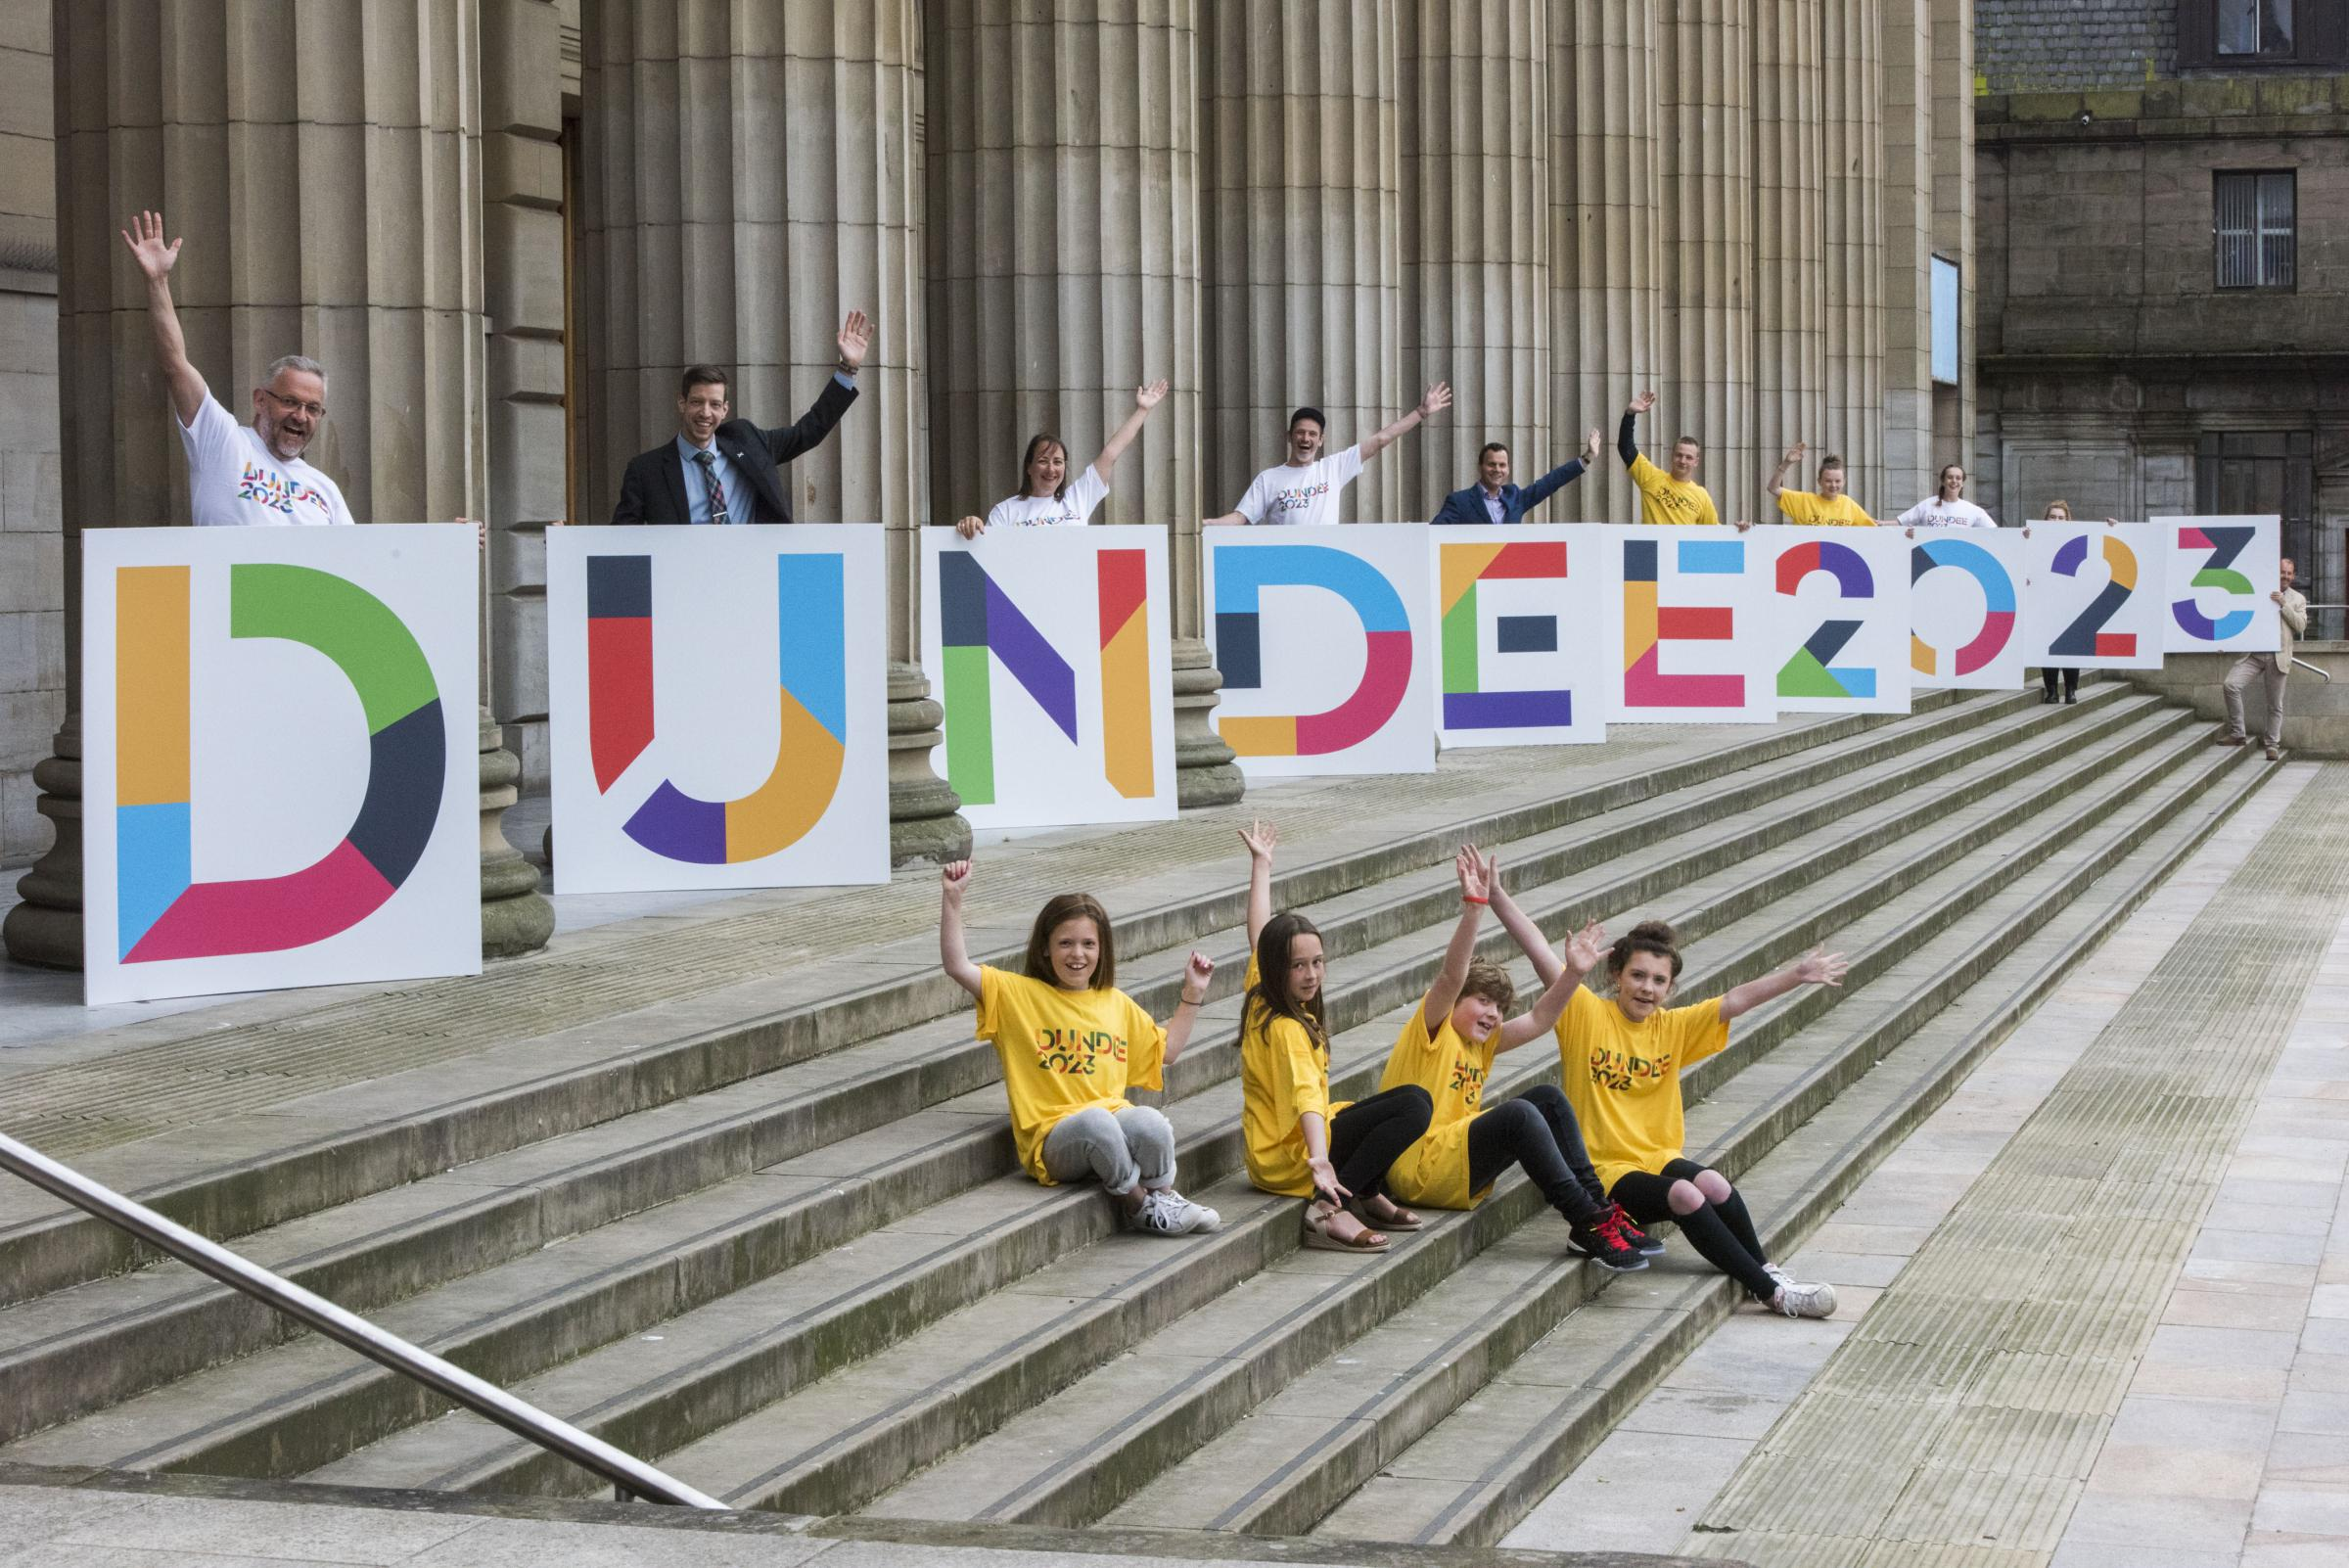 Three days before the Dundee 2023 bid team was due to present its plans in London, the European Commission announced that because of the Brexit vote, UK cities can no longer bid for the prestigious title.Picture: Alan Richardson